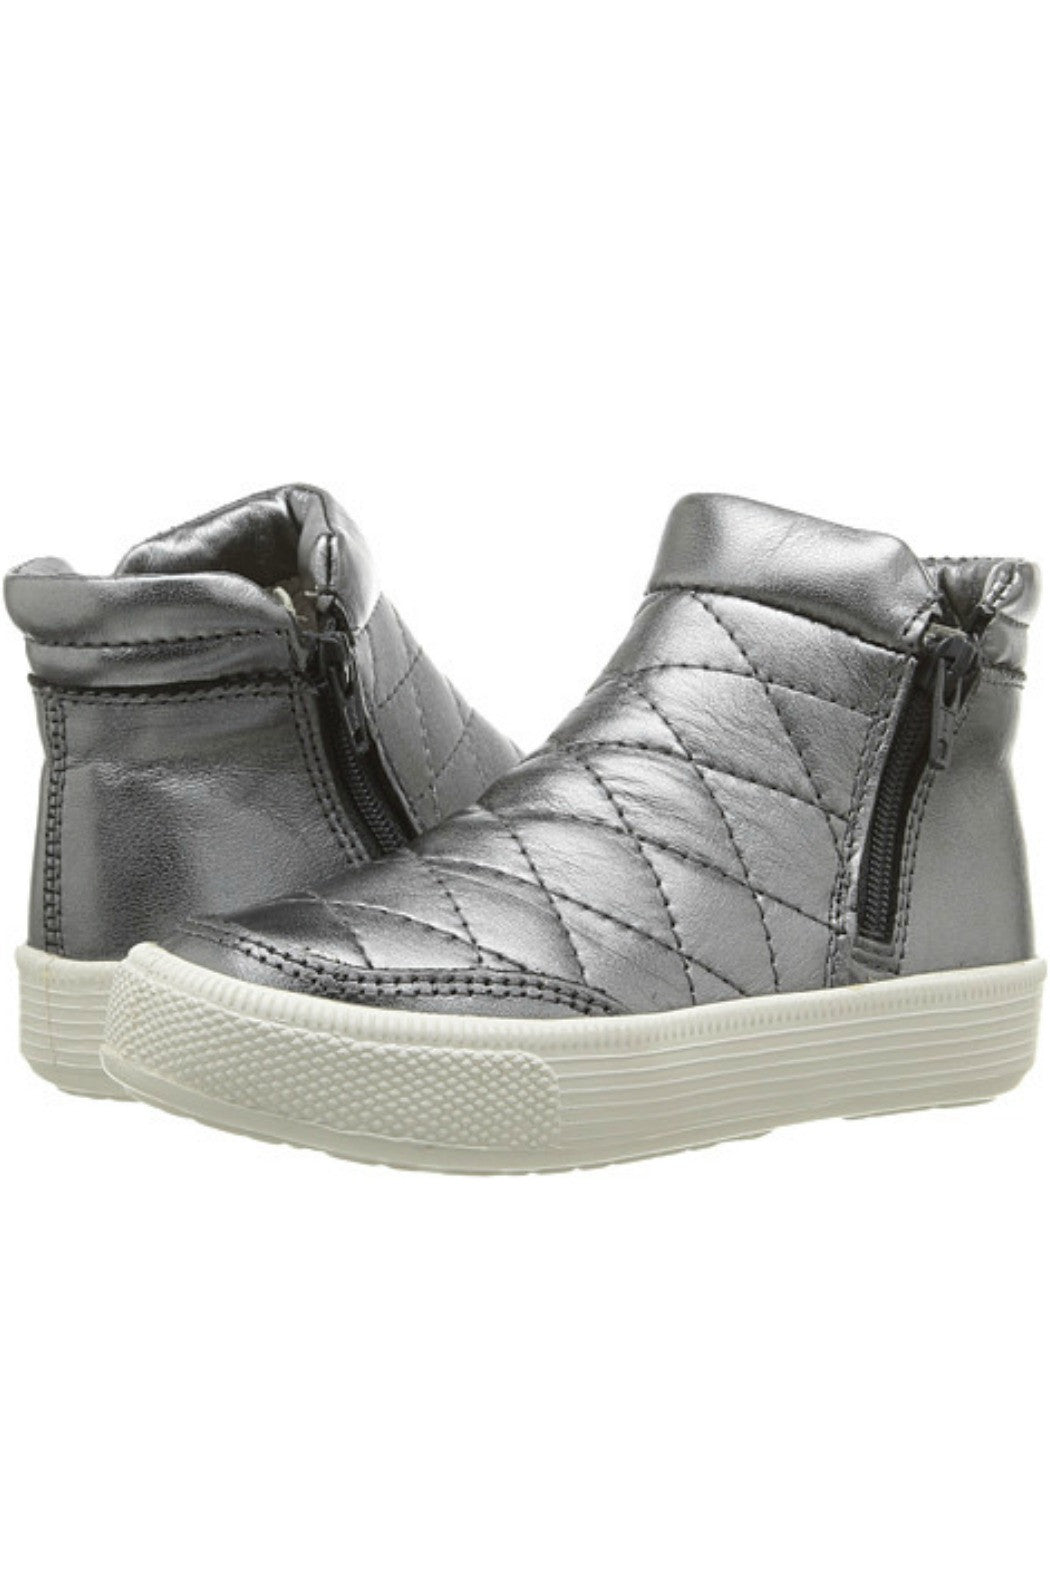 Zip Daley Silver Sneakers - R+D Hipster Emporium | Womens & Mens Clothing - 1